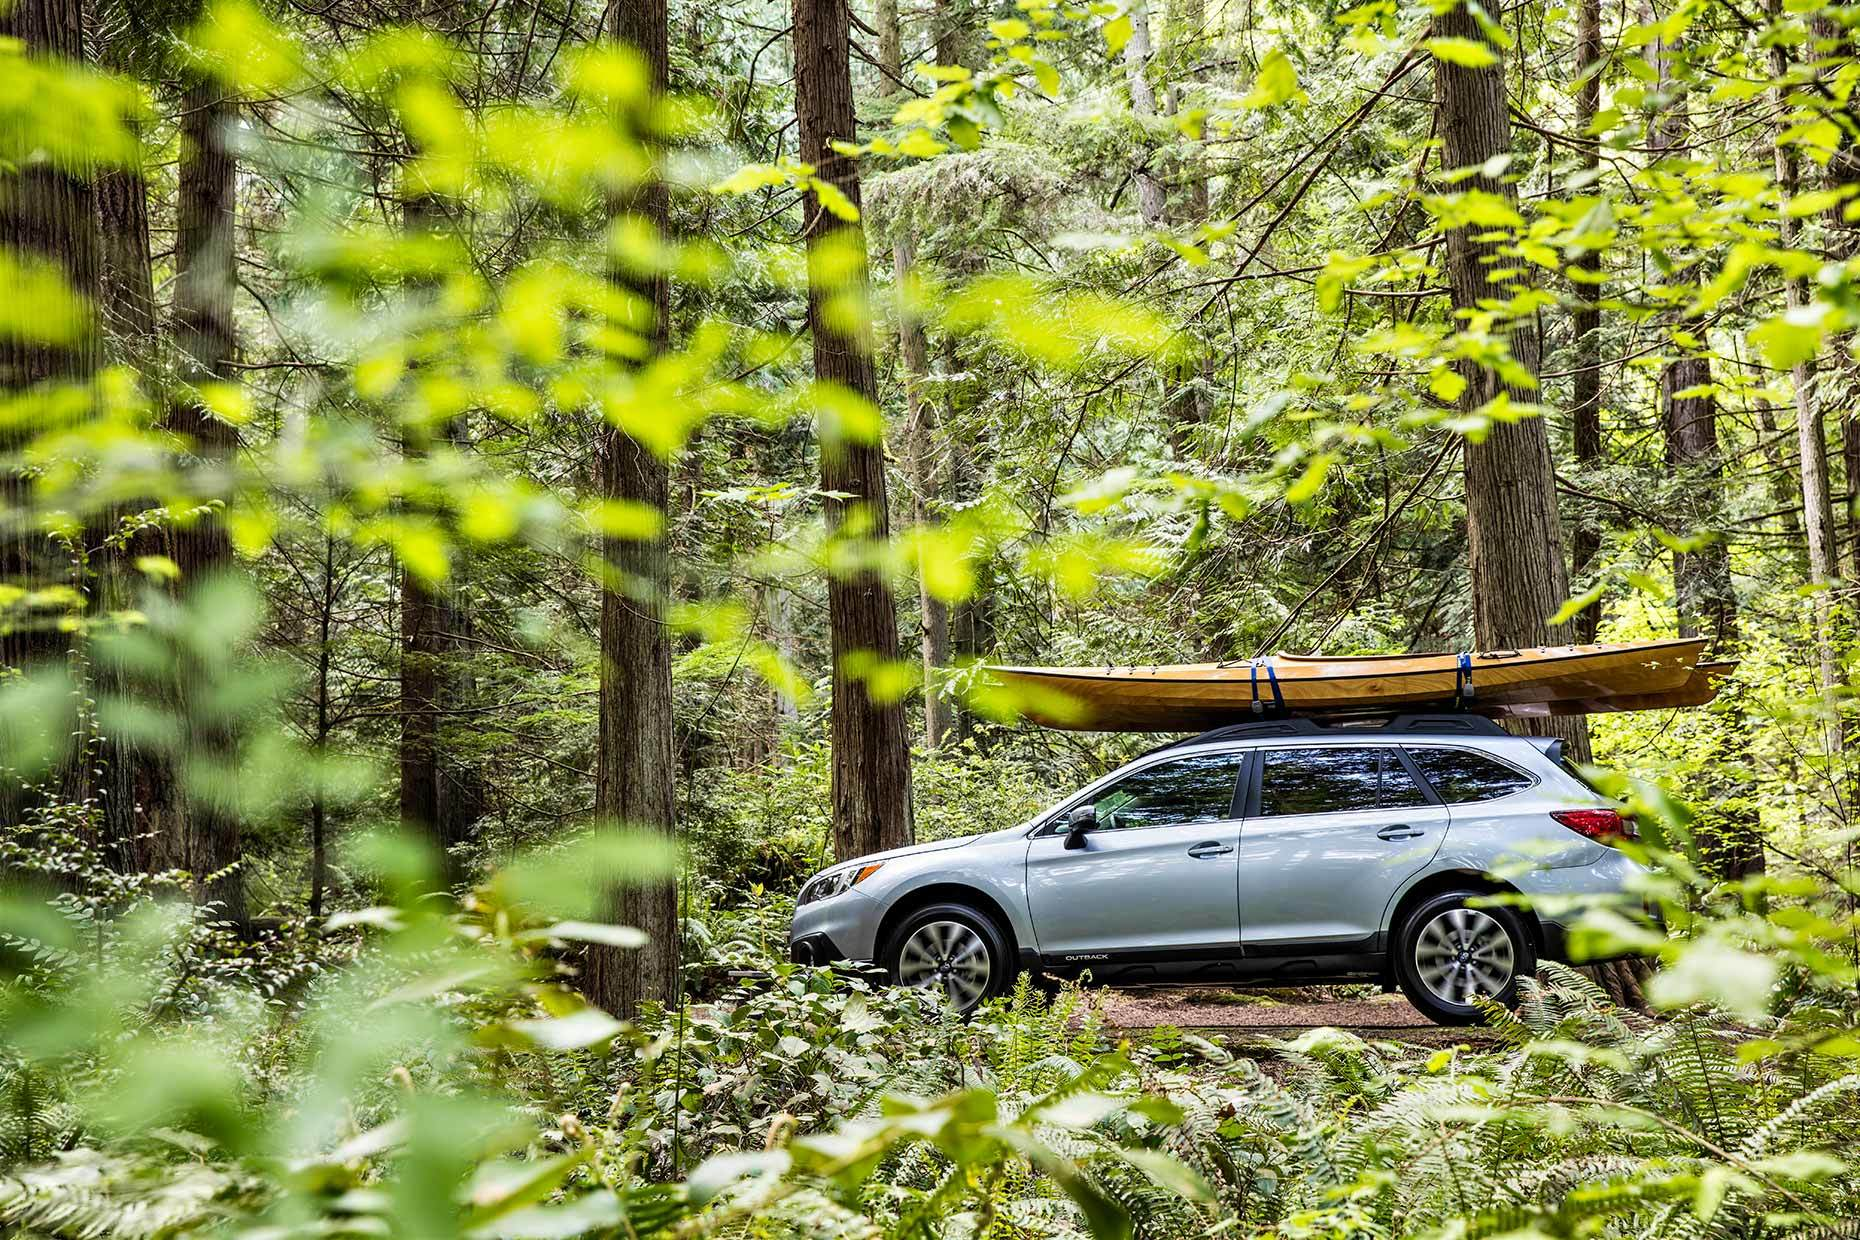 Christopher Nelson Photography|Subaru Outback|Forest|Seattle